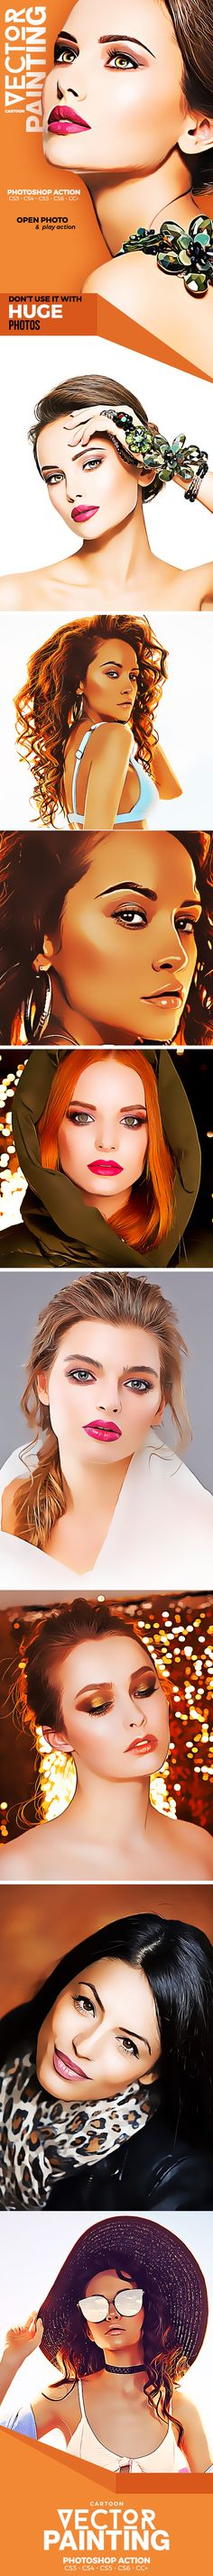 Cartoon Vector Painting Photoshop Action - Photo Effects Actions